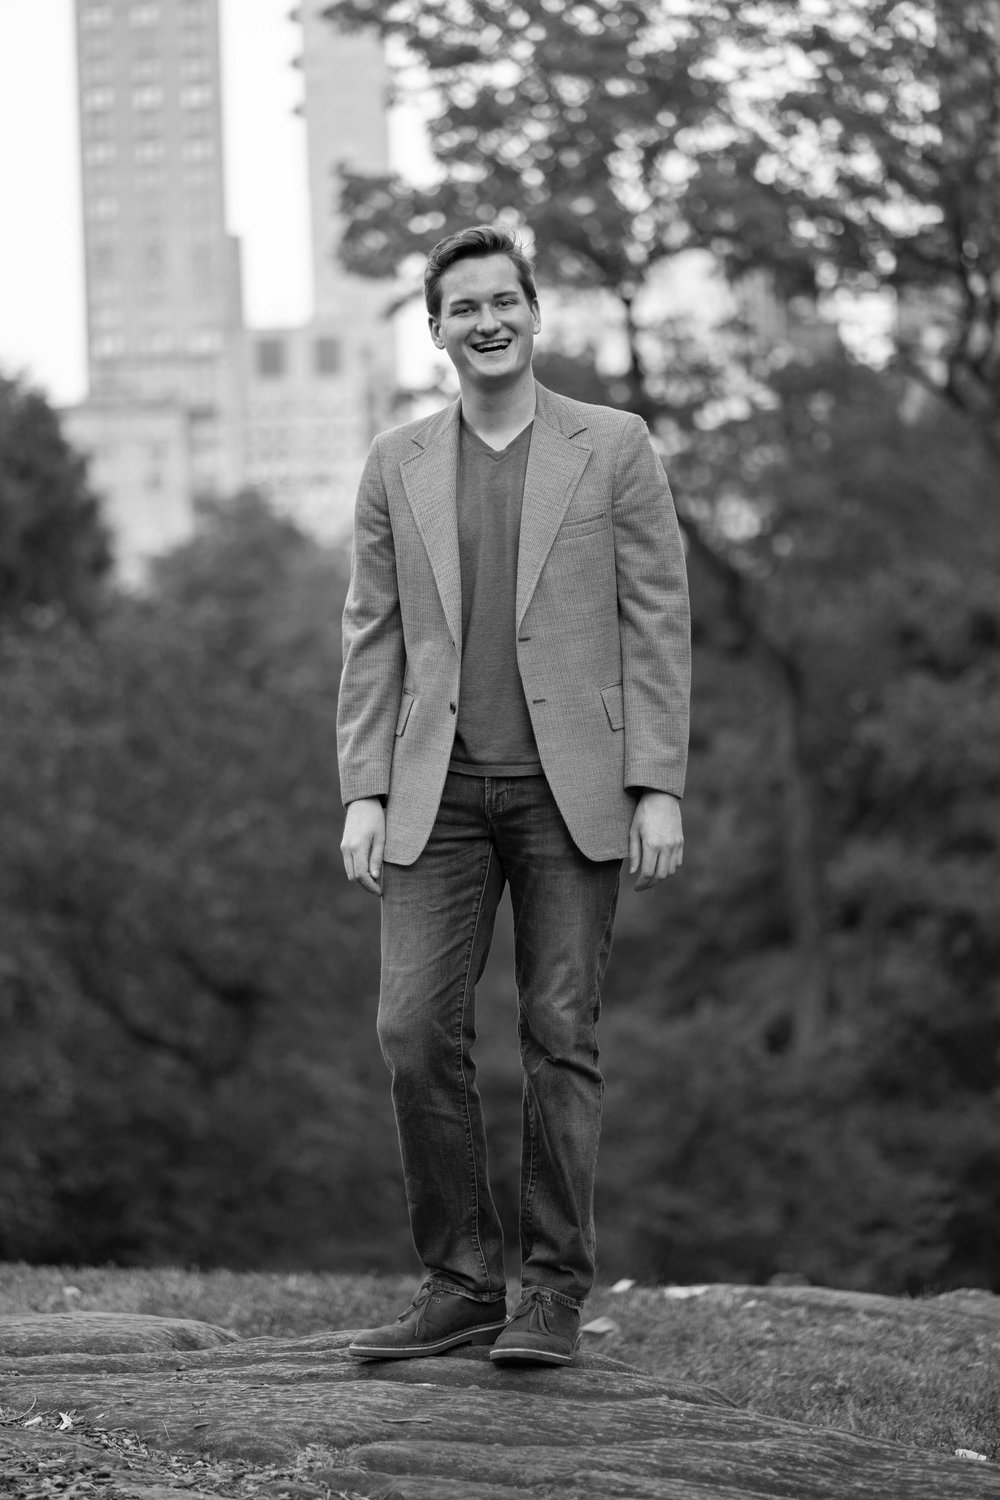 About! - James Arthur Douglas is a New York City Based Singer & Actor, currently performing with The Atlanta Opera in a bilingual version of Rossini's delightful and energetic The Barber of Seville. Created by stage director Kristine McIntyre, the 45-minute adaptation will be performed in Spanish and English, and demonstrates the power of love to triumph over adversity of every kind.Designed to travel, The Atlanta Opera Studio Tour productions are presented in schools and community venues across the state of Georgia each season. Educators are provided with comprehensive Study Guides which feature cross-curricular lesson plans and activities corresponding to the Georgia Standards of Excellence.Most recently, James was awarded 2nd Prize at the 2019 Pro Mozart Society of Atlanta Scholarship Competition.On March 12th, it was announced that James would step into the titular role of The Beast in Prather Production's Beauty and the Beast at the Broadway Palm Dinner Theater in Fort Myers, Florida.